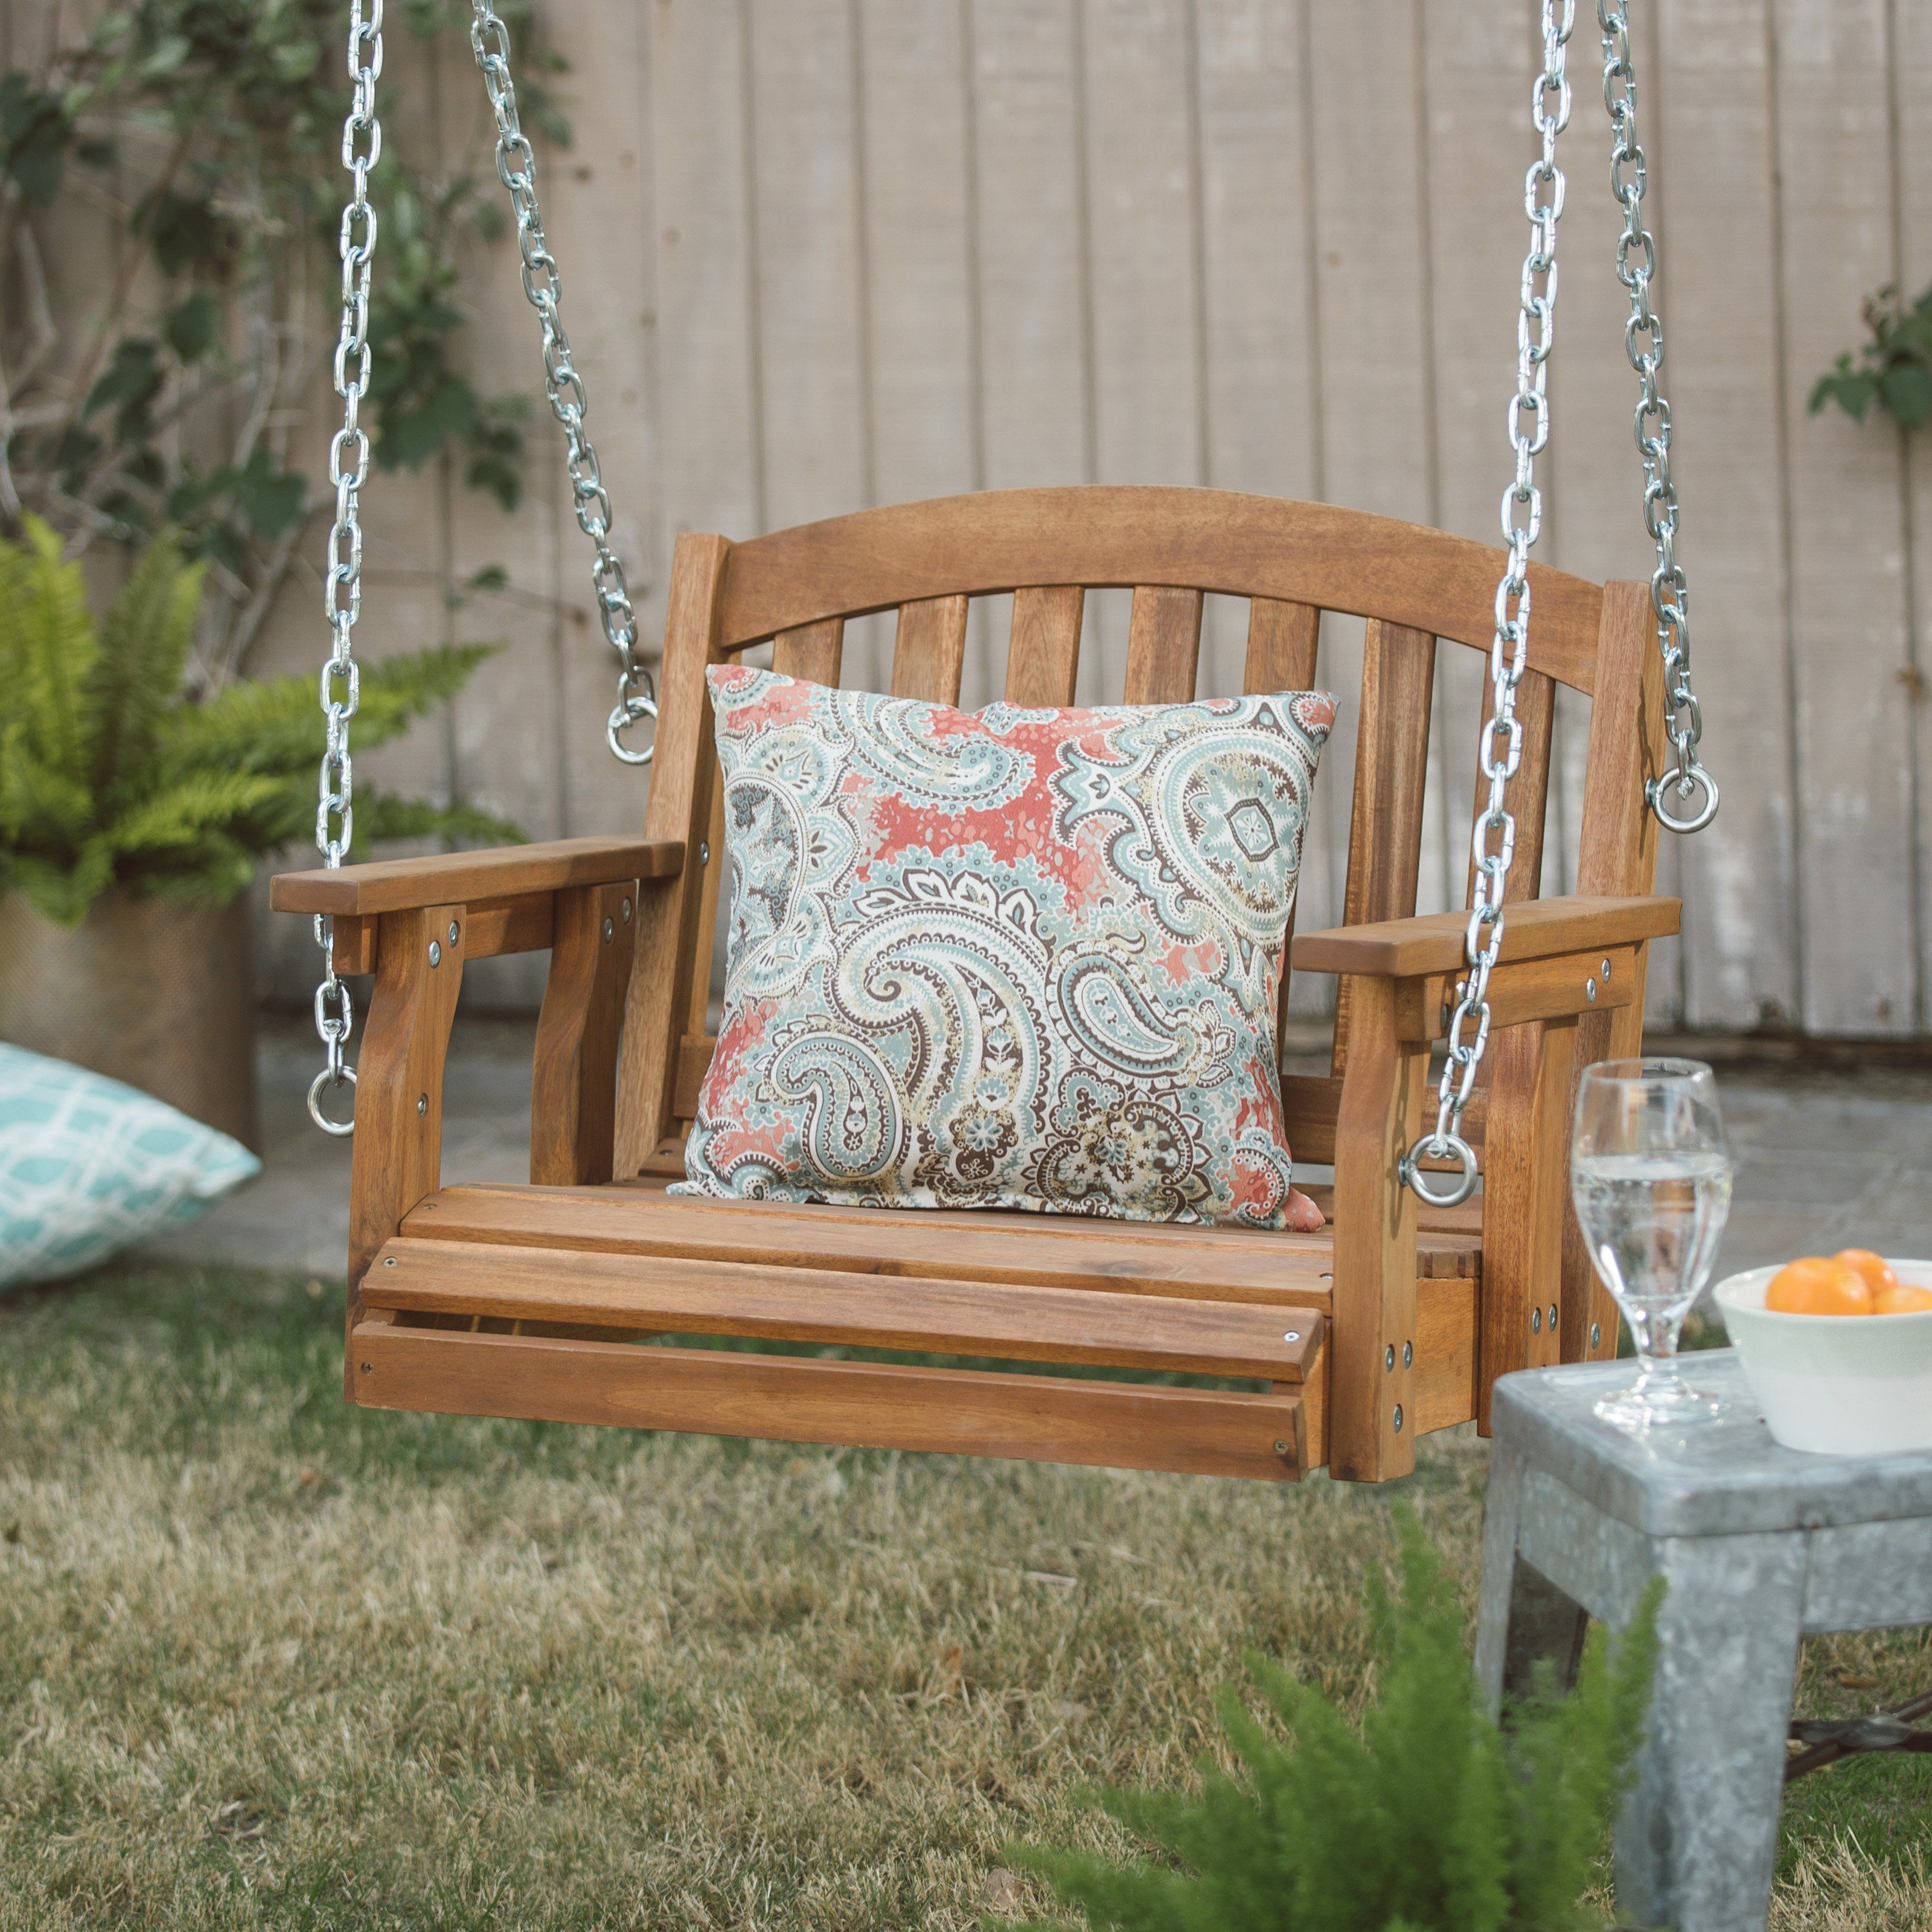 replacement and patio for chair in with design home outdoor creative remodeling swing interior covers